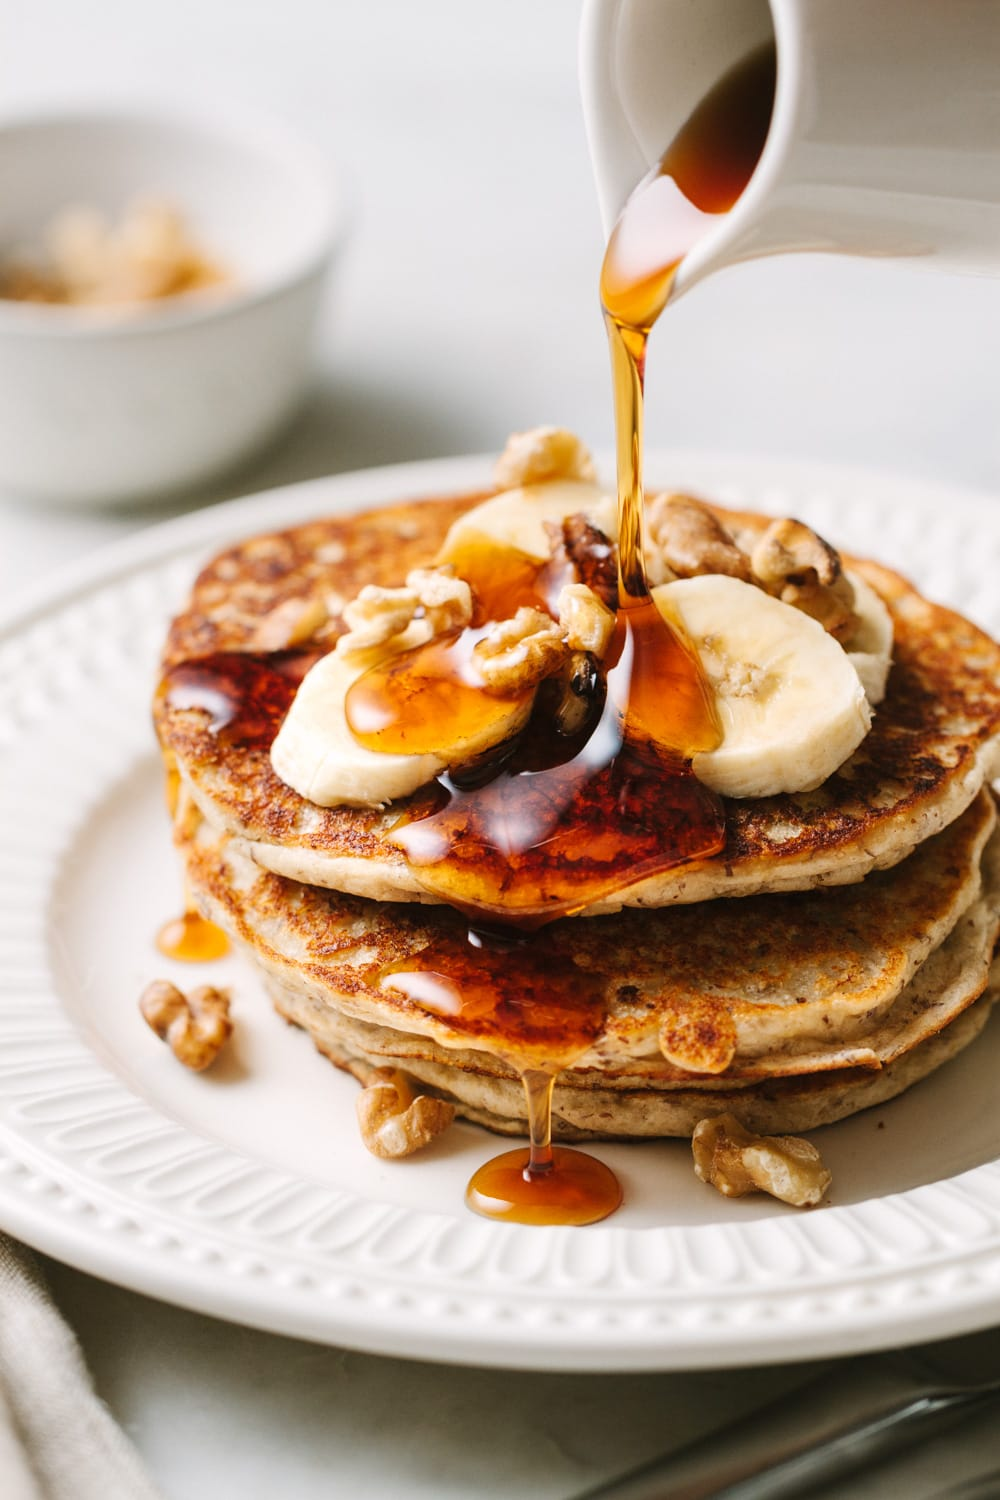 vegan banana pancakes with banana slices and walnuts and drizzled with pure maple syrup on a white plate